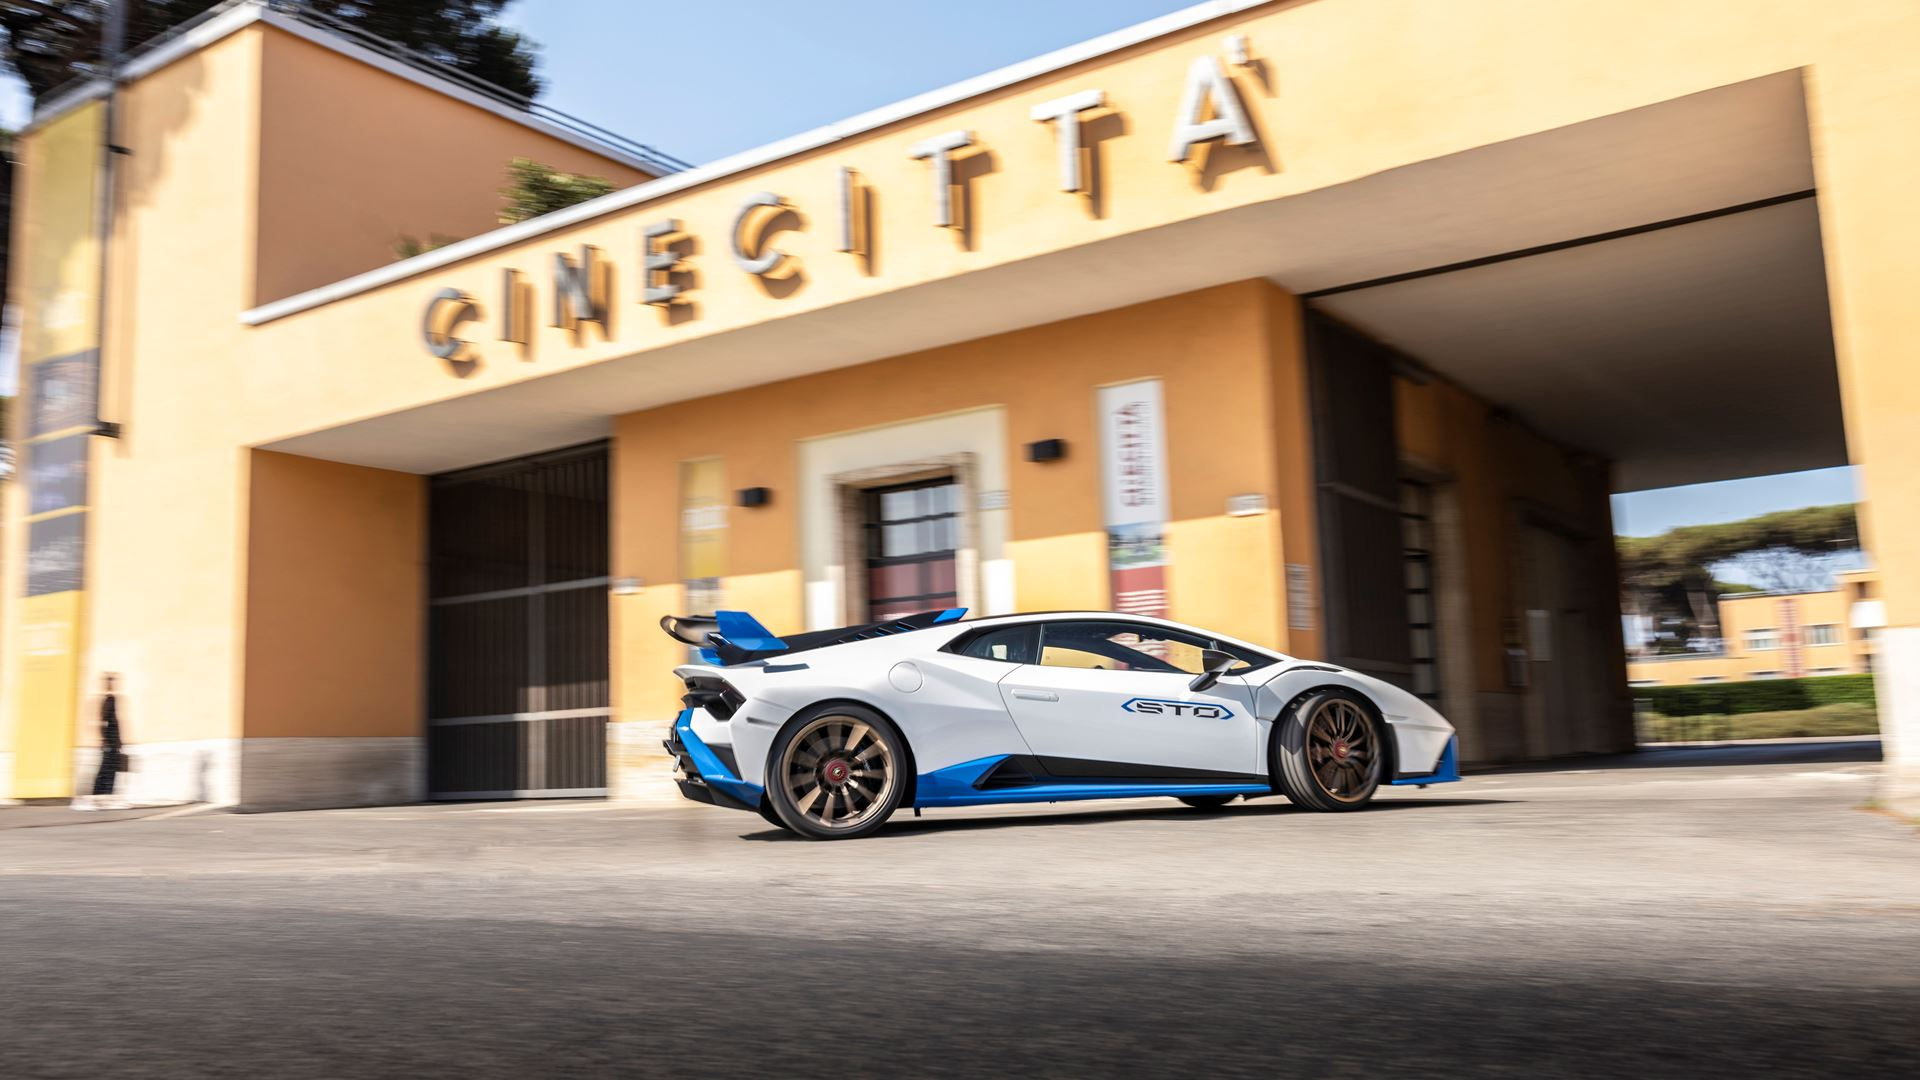 Lamborghini Huracán STO finally unleashed First test-drives in Rome and at the Autodromo Piero Taruffi in Vallelunga - Image 2